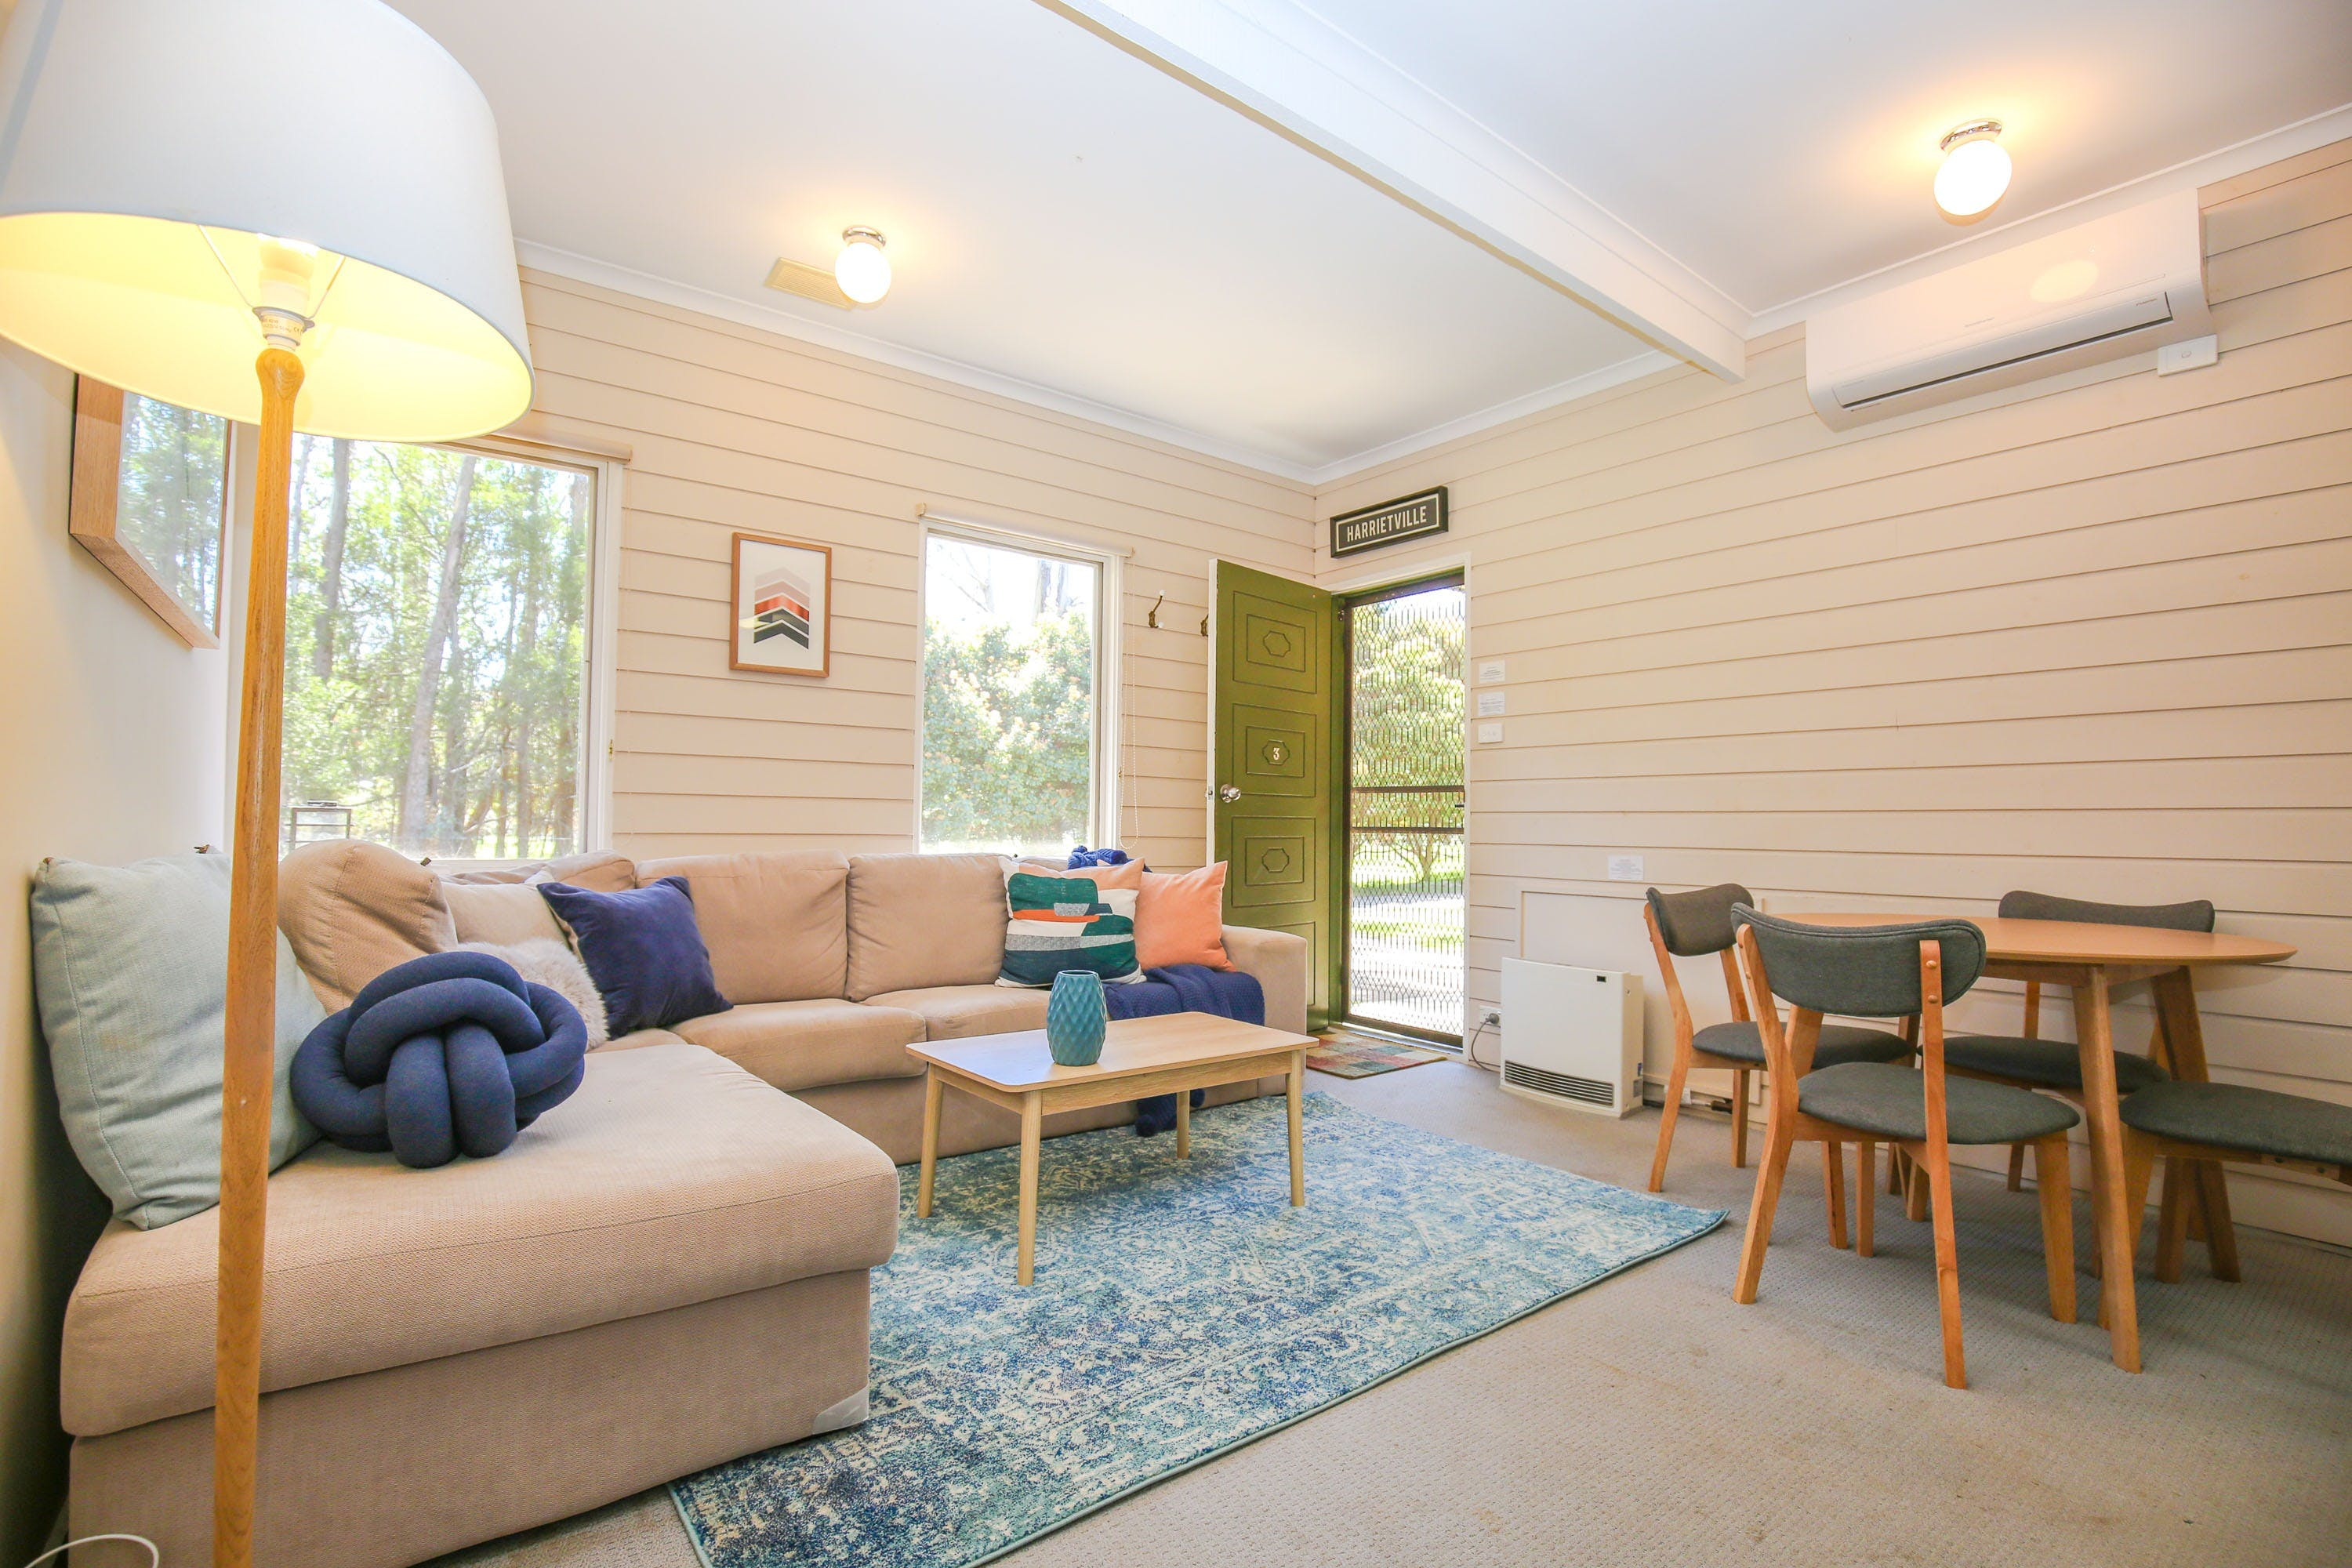 Hylander Holiday Unit - Accommodation Bookings